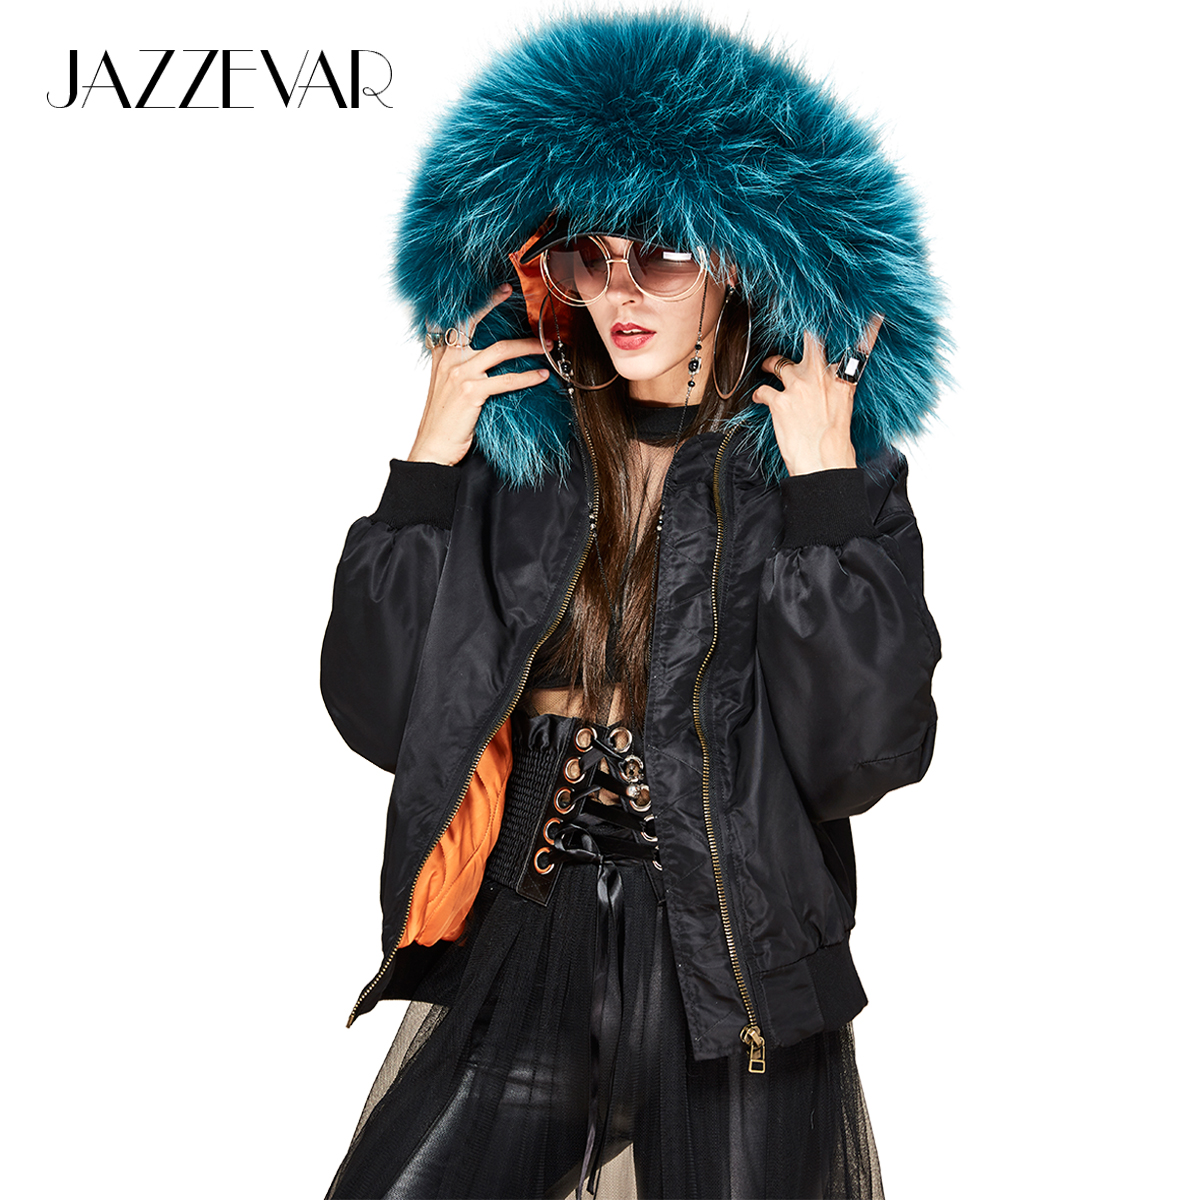 JAZZEVAR 2019 New winter fashion street woman hooded bomber jacket large raccoon fur collar short basic